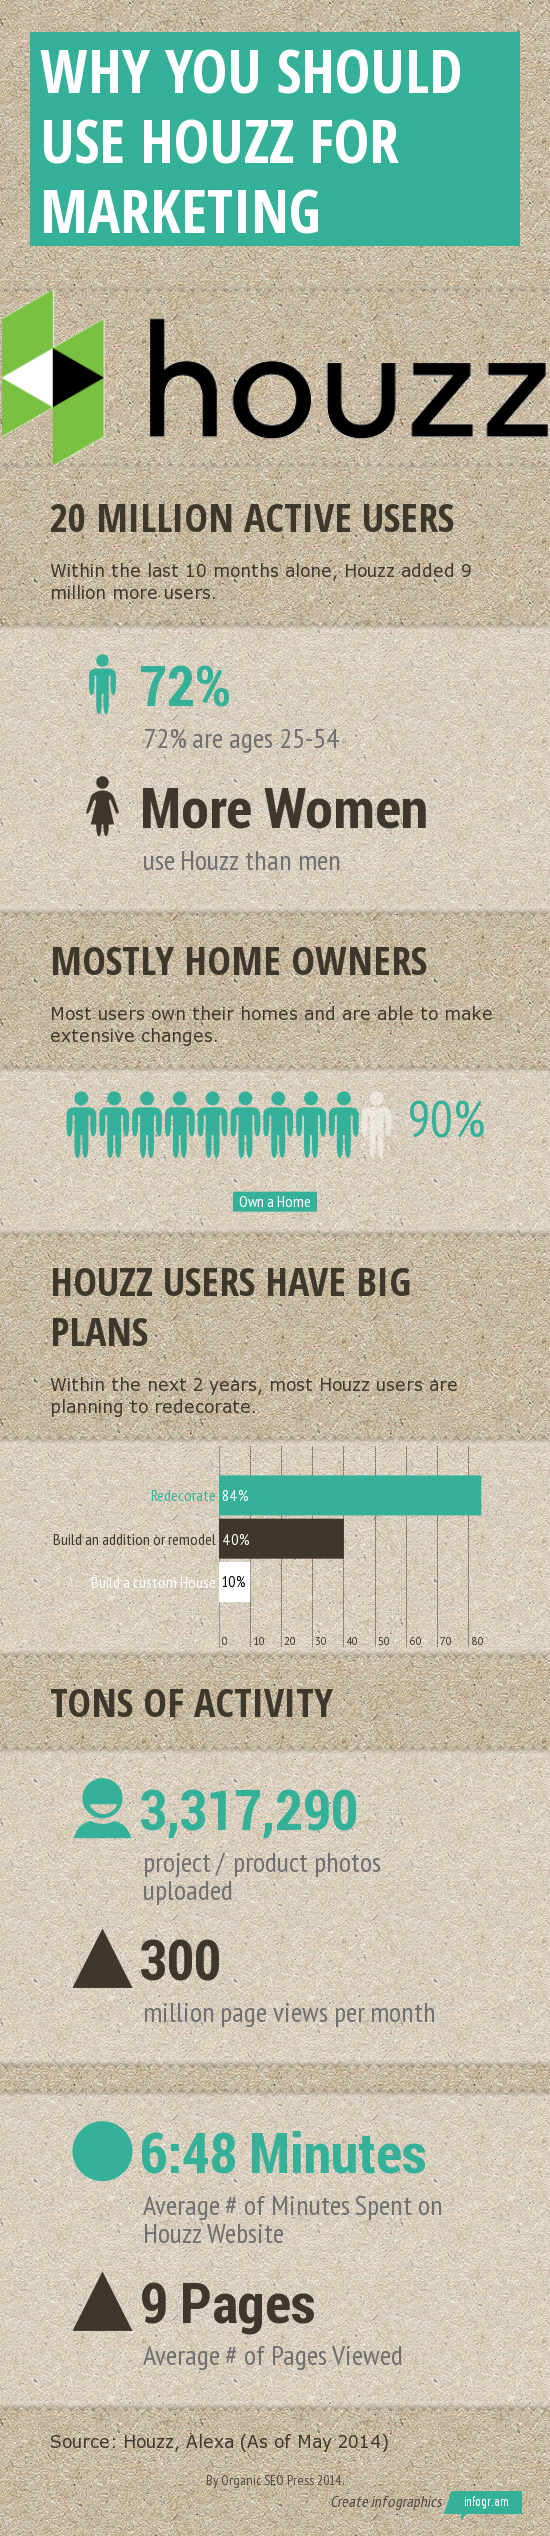 WhY-You-Should-Use-Houzz-for-2